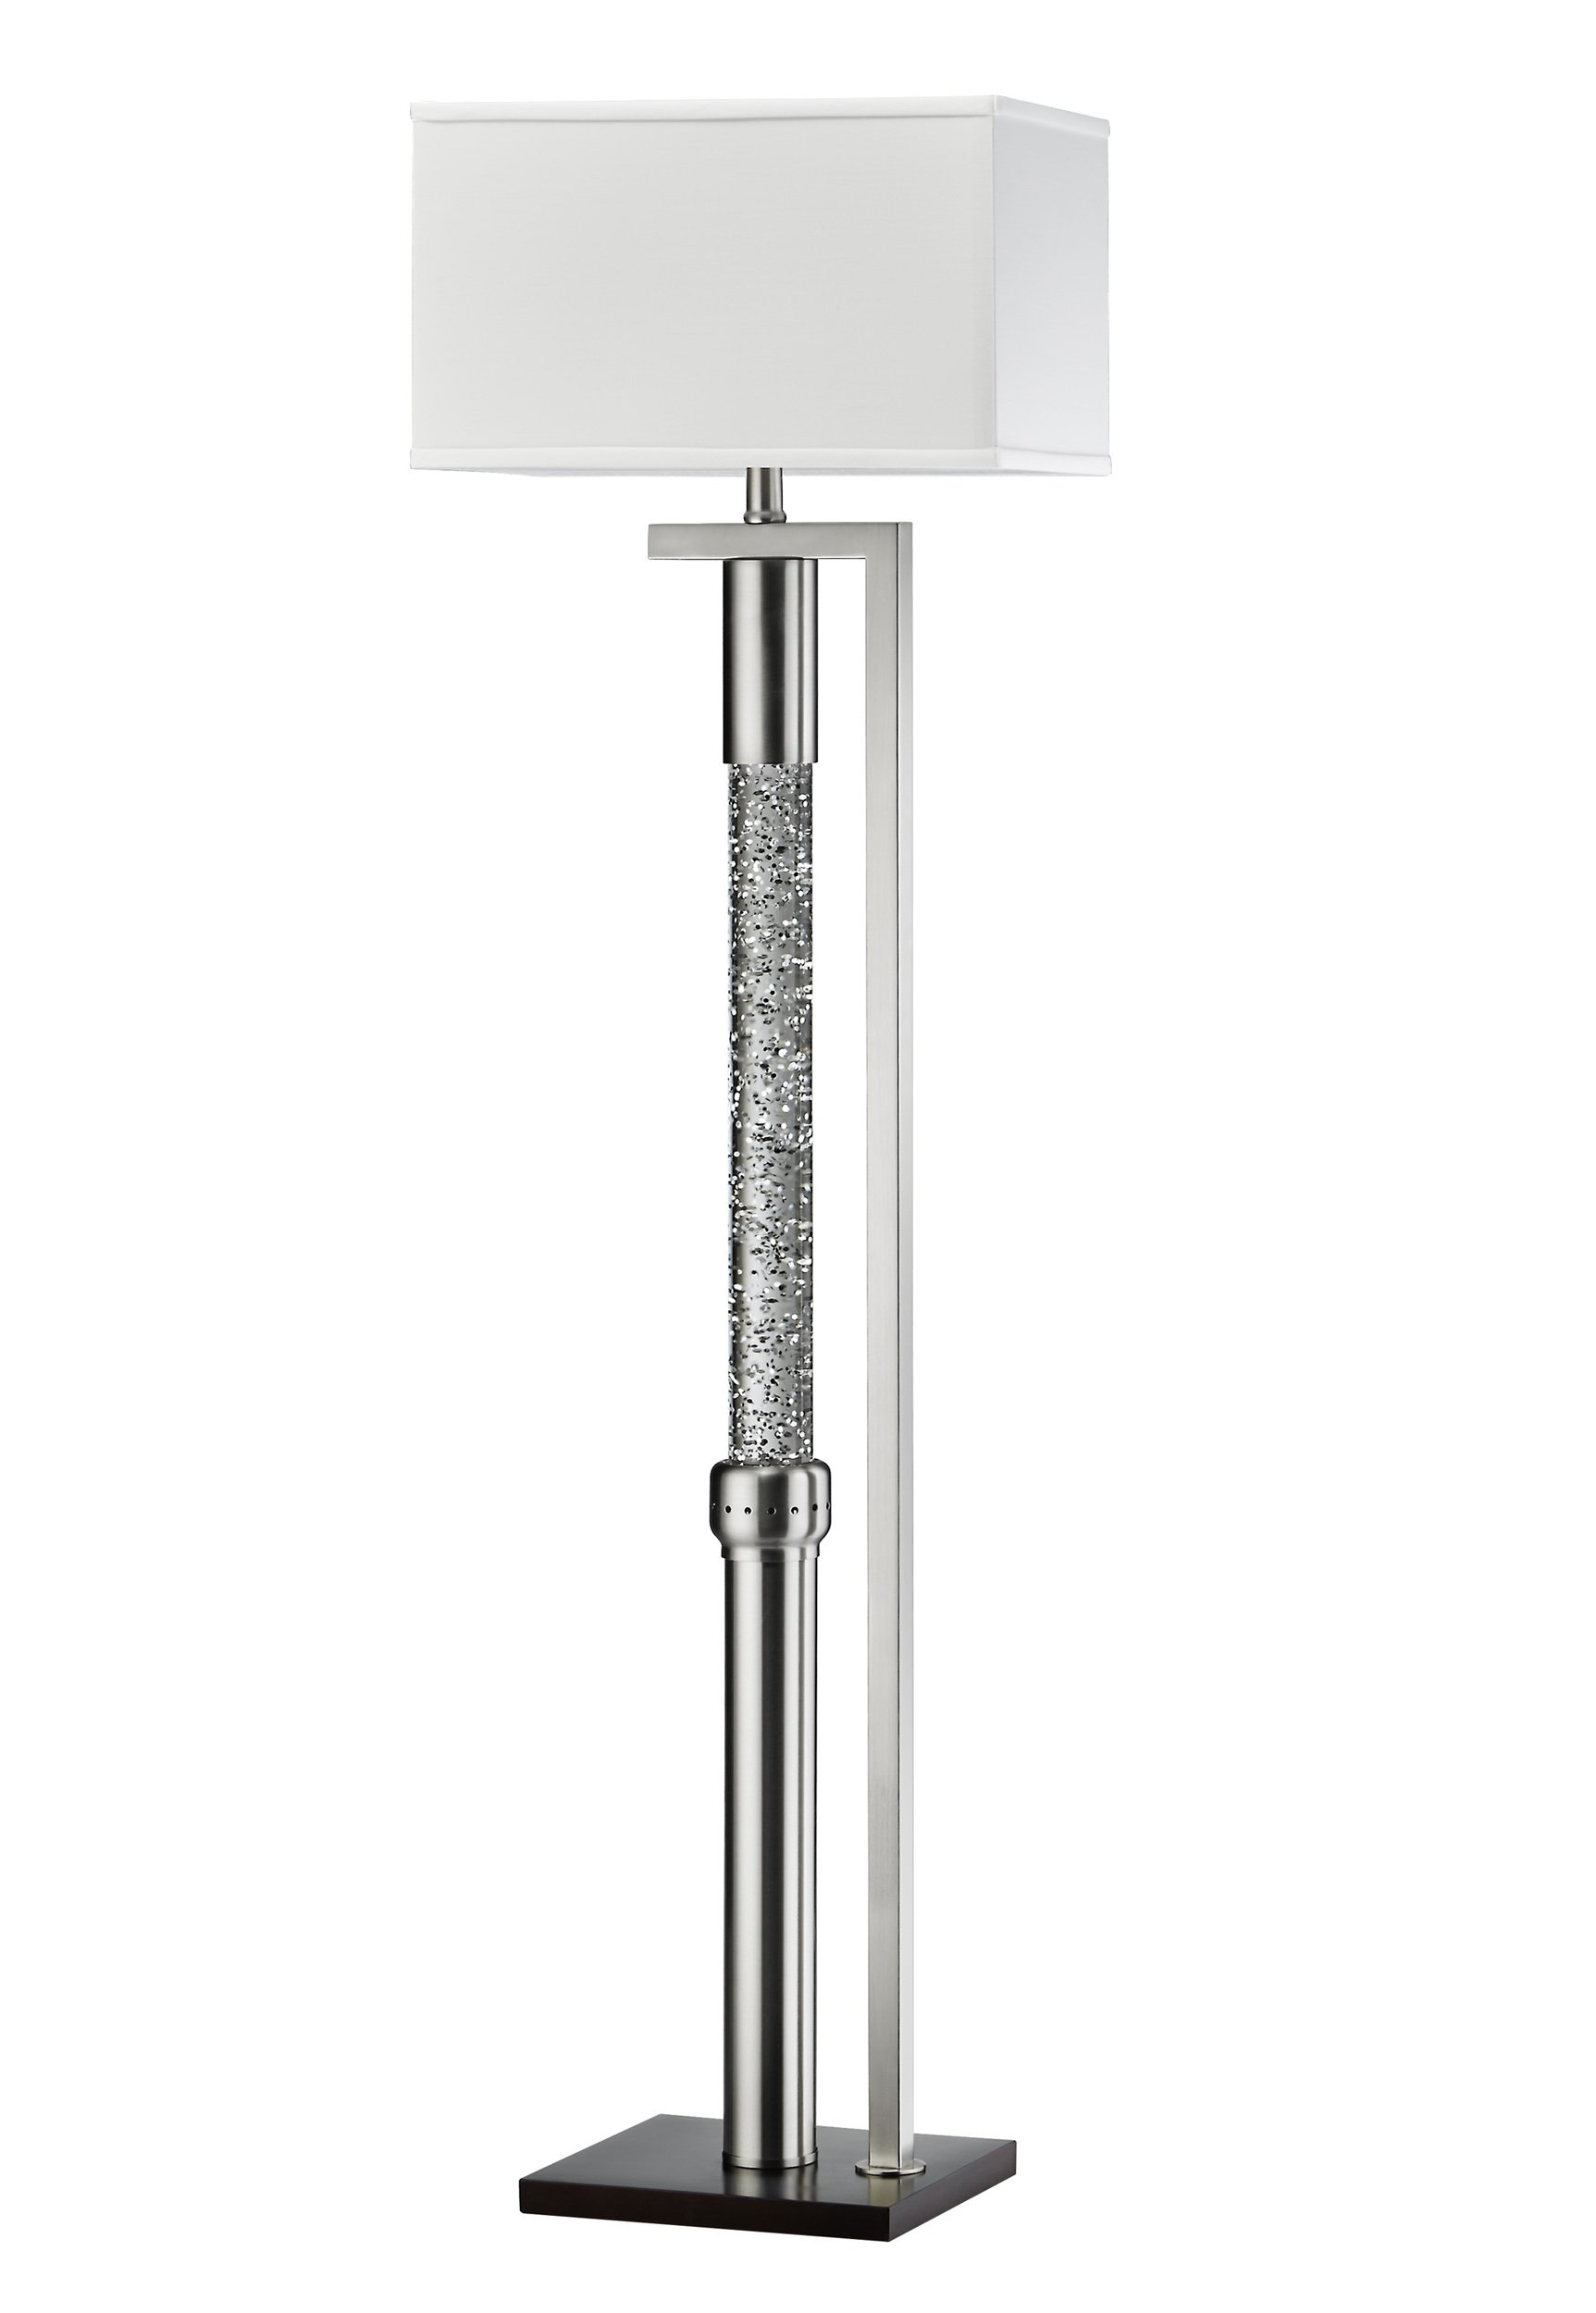 Homelegance Satin Nickel Metal Finish Floor lamp with Reverse L-Shaped Frame Sparkling Decorative Drop Dancing Water Mood, Night Light by Homelegance